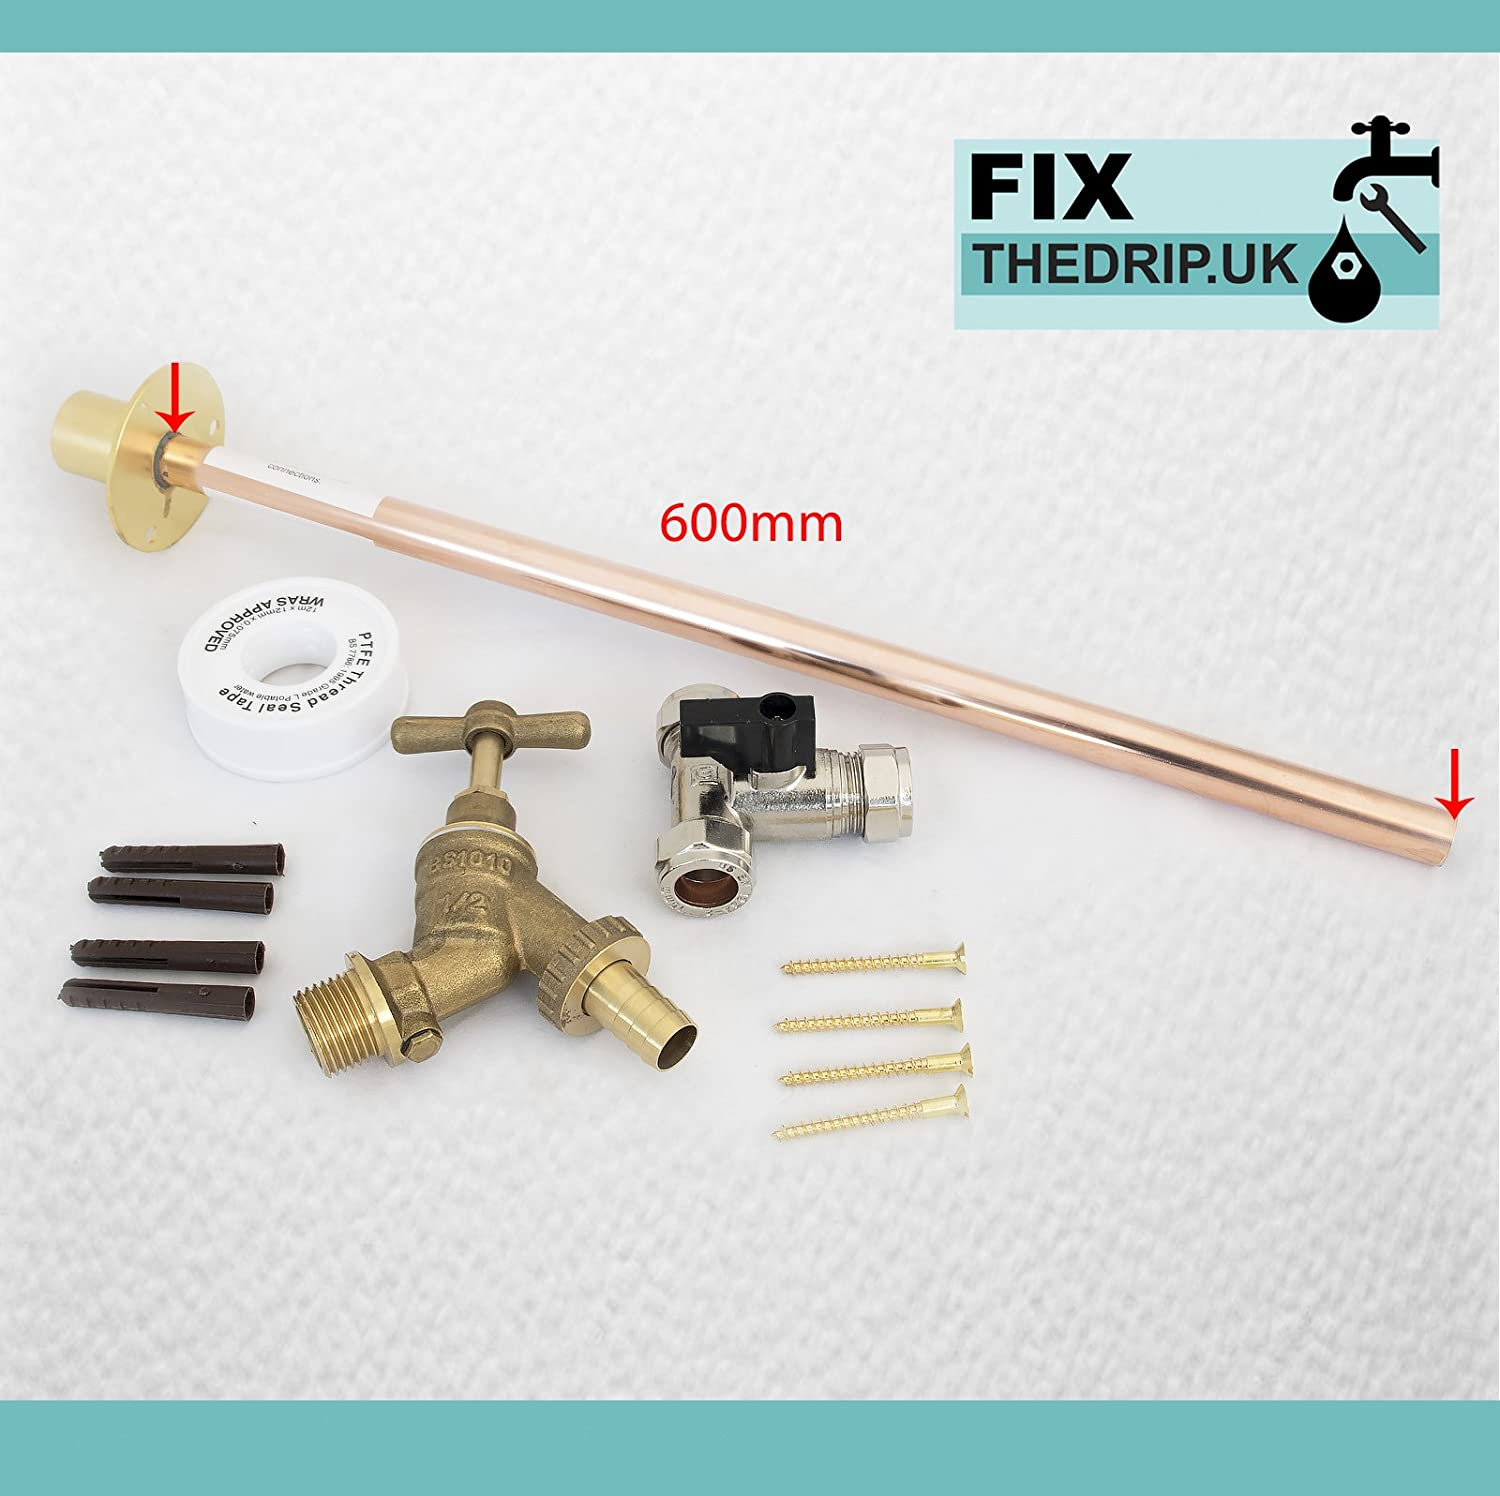 Professional THRU WALL Outside Garden Tap Kit meets Water Regulations GT7 extra long 600mm Wall Flange for thicker Walls